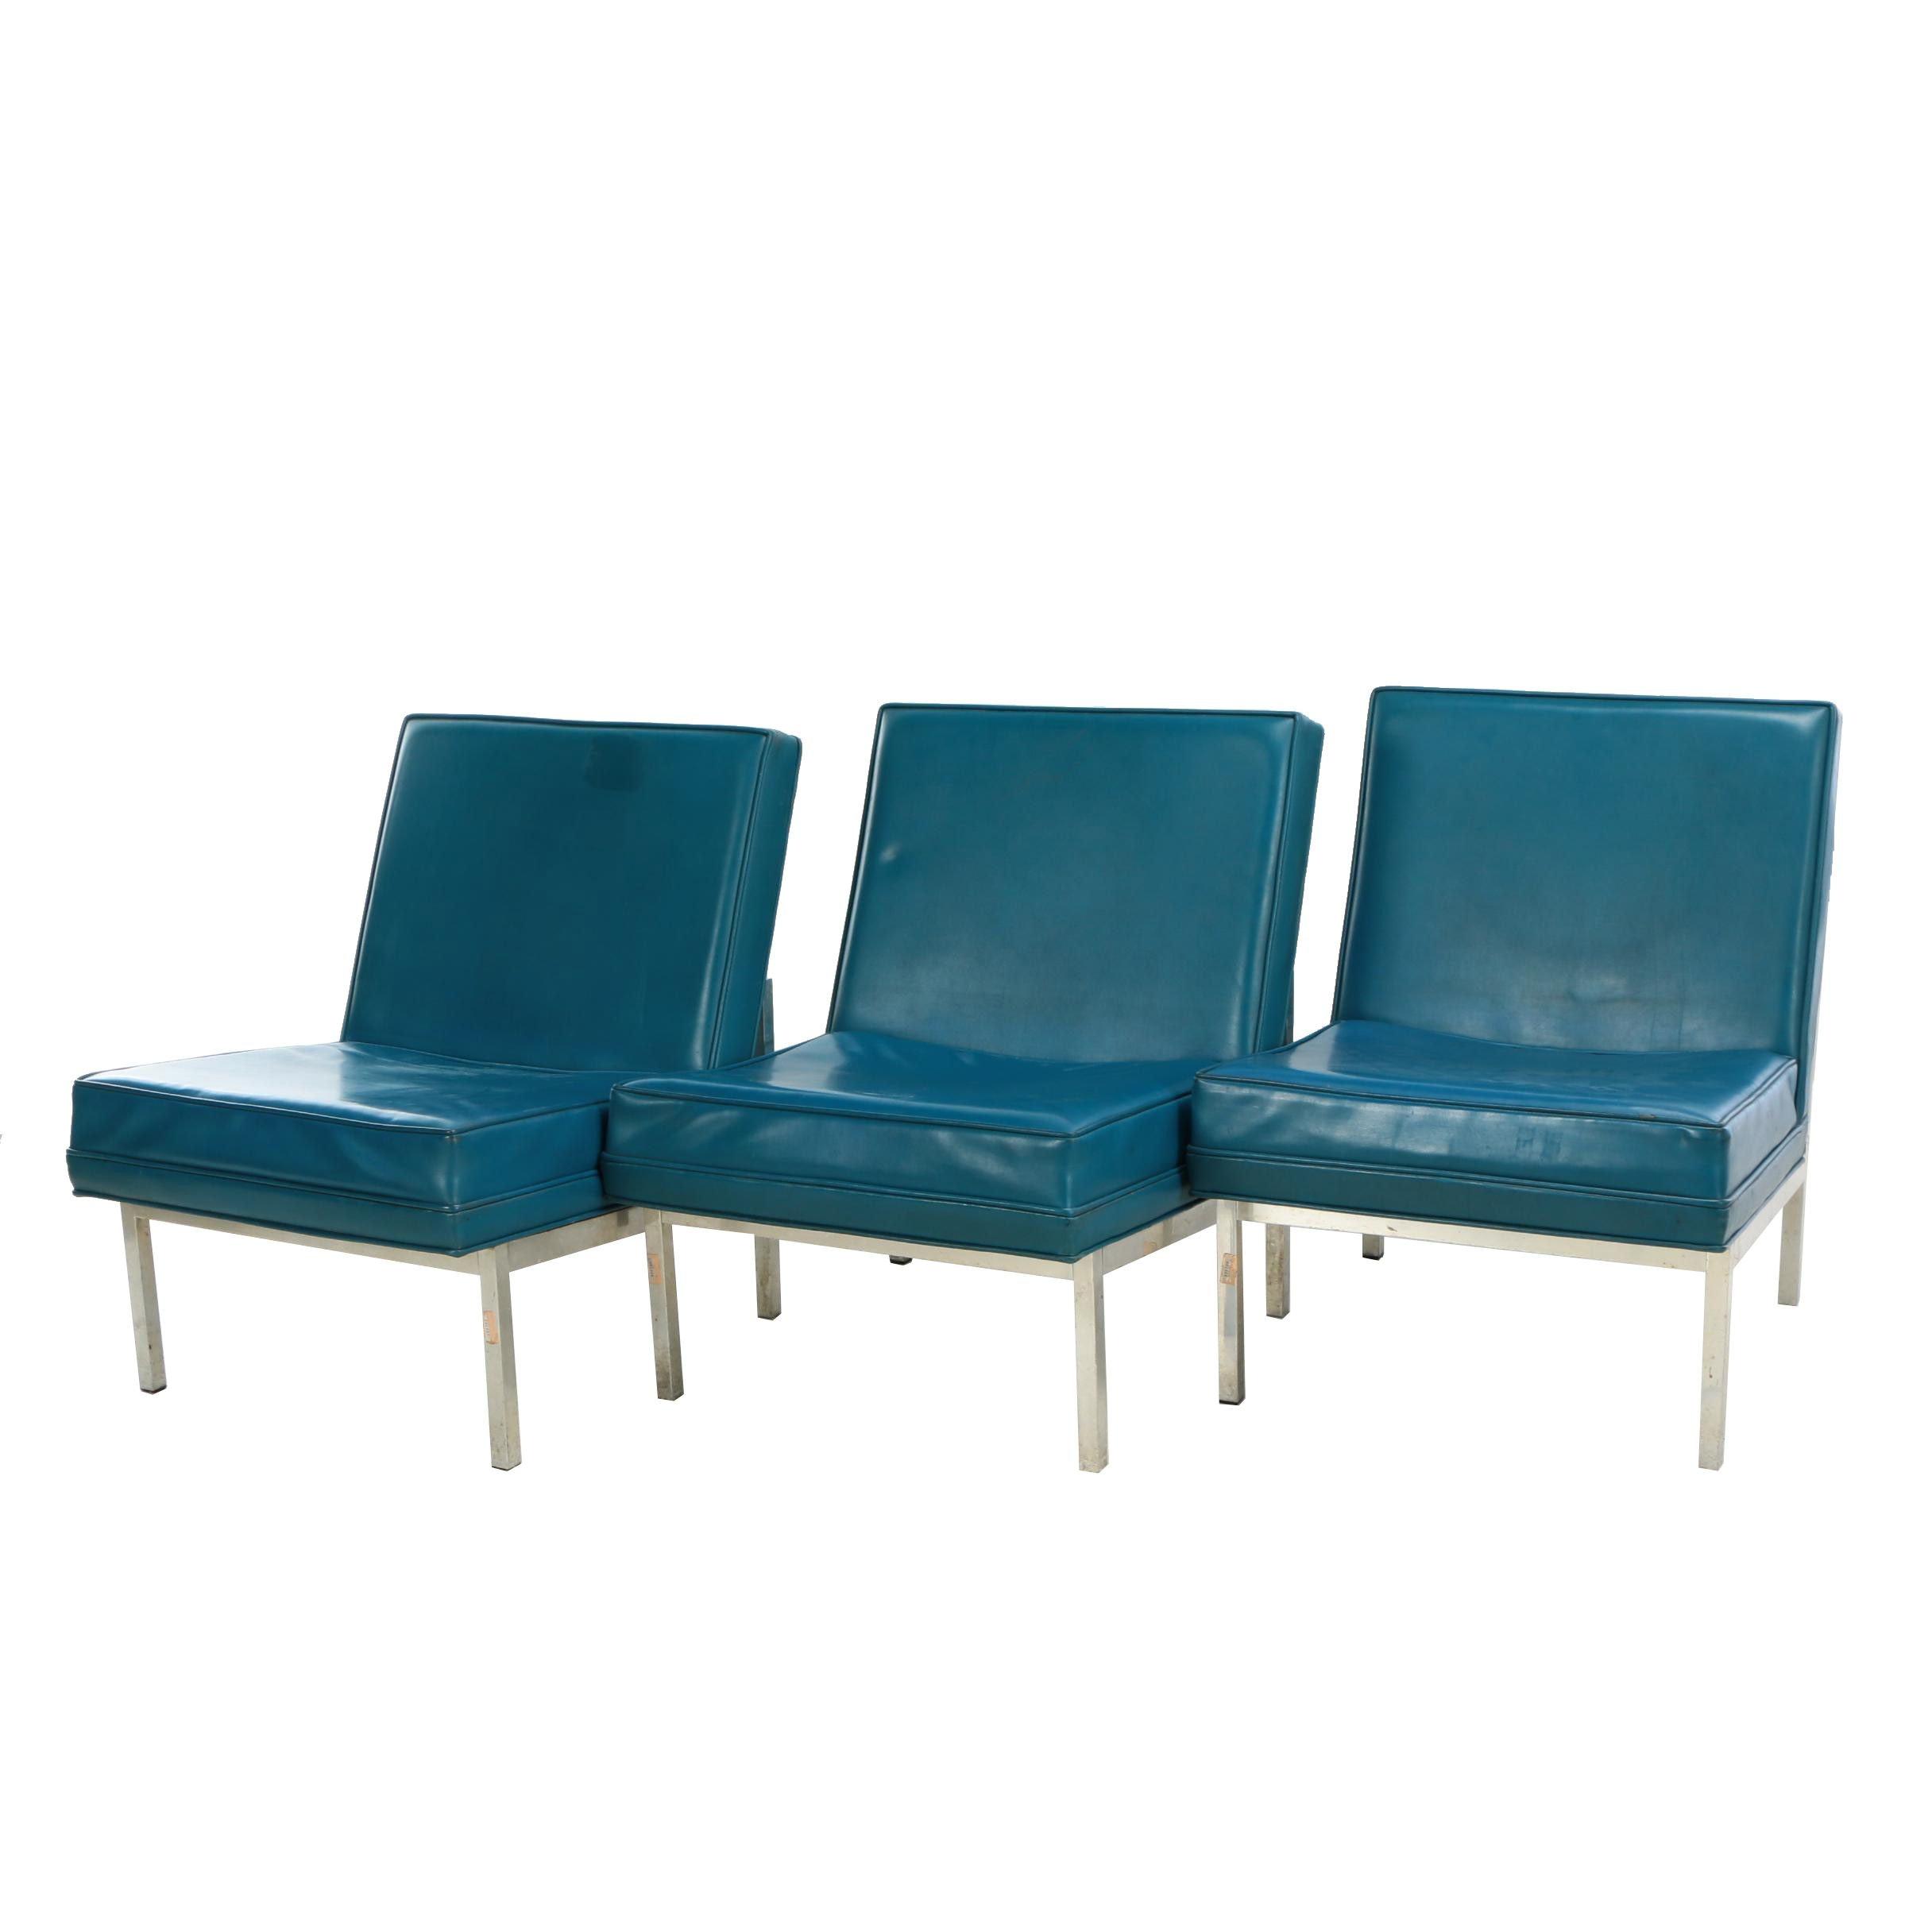 Jack Cartwright Inc., Three Aluminum and Blue Vinyl Lounge Chairs, Circa 1960